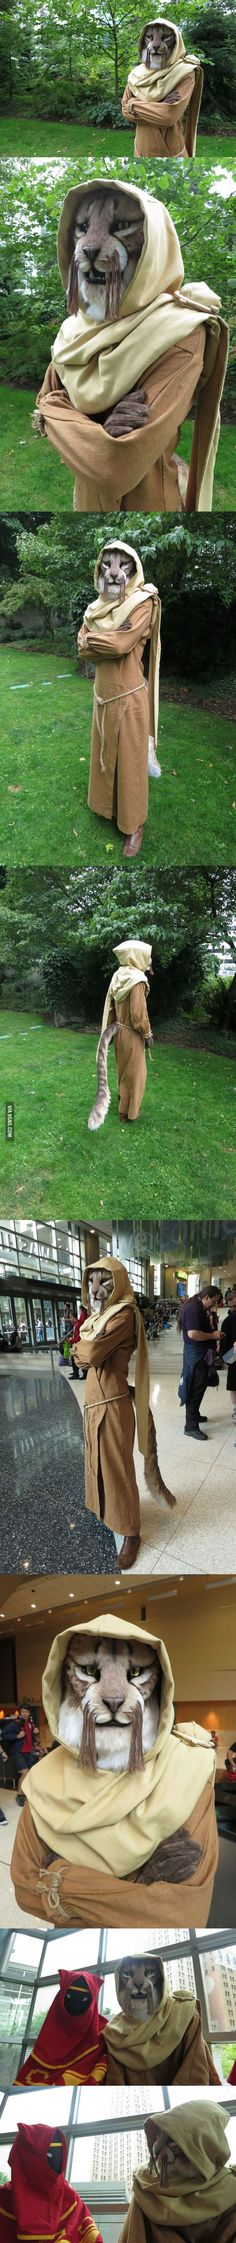 Skyrim Khajiit cosplay - M'aiq the Liar